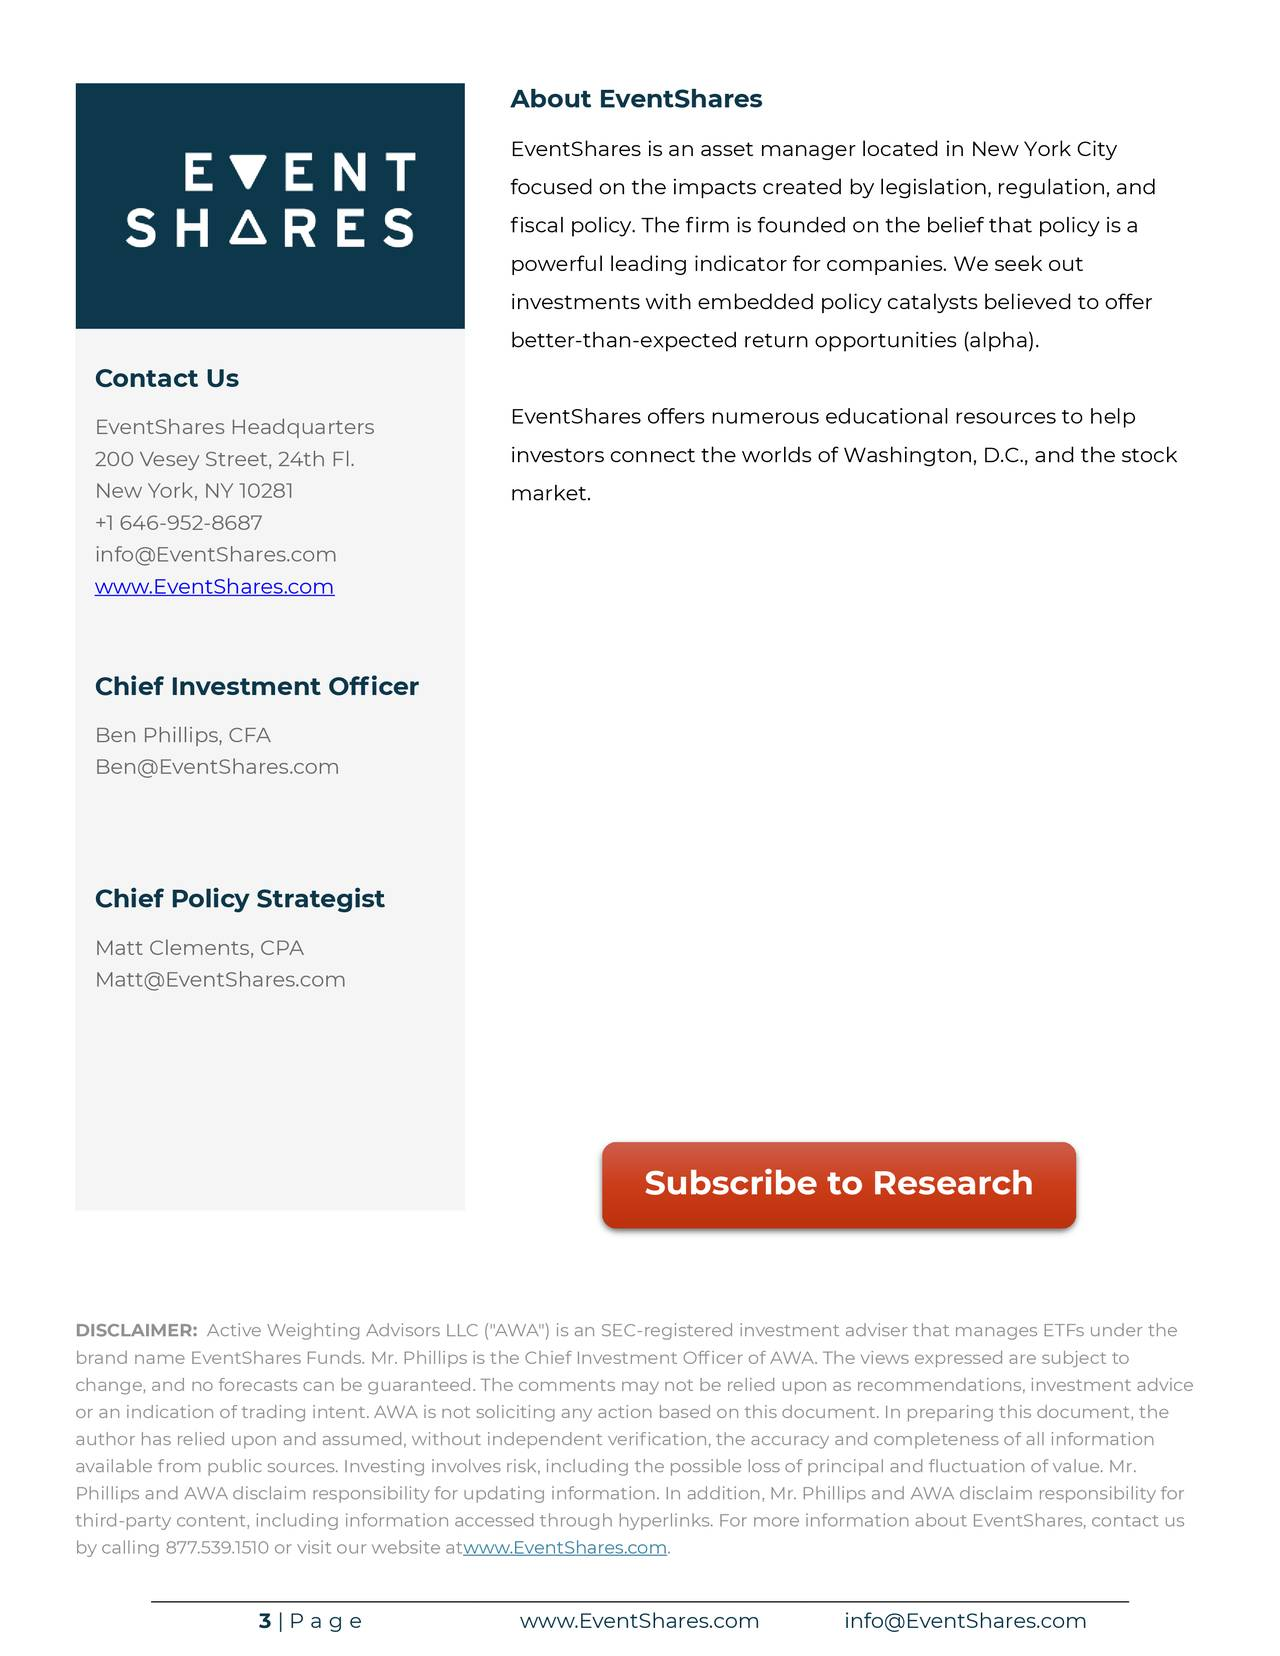 """EventShares is an asset manager located in New York City focused on the impacts created by legislation, regulation, and fiscal policy. The firm is founded on the belief that policy is a powerful leading indicator for companies. We seek out investments with embedded policy catalysts believed to offer better-than-expected return opportunities (alpha). Contact Us EventShares Headquarters EventShares offers numerous educational resources to help 200 Vesey Street, 24th Fl. investors connect the worlds of Washington, D.C., and the stock New York, NY 10281 market. +1 646-952-8687 info@EventShares.com www.EventShares.com Chief Investment Officer Ben Phillips, CFA Ben@EventShares.com Chief Policy Strategist Matt Clements, CPA Matt@EventShares.com Subscribe to Research DISCLAIMER: Active Weighting Advisors LLC (""""AWA"""") is an SEC-registered investment adviser that manages ETFs under the brand name EventShares Funds. Mr. Phillips is the Chief Investment Officer of AWA. The views expressed are subject to change, and no forecasts can be guaranteed. The comments may not be relied upon as recommendations, investment advice or an indication of trading intent. AWA is not soliciting any action based on this document. In preparing this document, the author has relied upon and assumed, without independent verification, the accuracy and completeness of all information available from public sources. Investing involves risk, including the possible loss of principal and fluctuation of value. Mr. Phillips and AWA disclaim responsibility for updating information. In addition, Mr. Phillips and AWA disclaim responsibility for third-party content, including information accessed through hyperlinks. For more information about EventShares, contact us by calling 877.539.1510 or visit our website atwww.EventShares.com. 3 